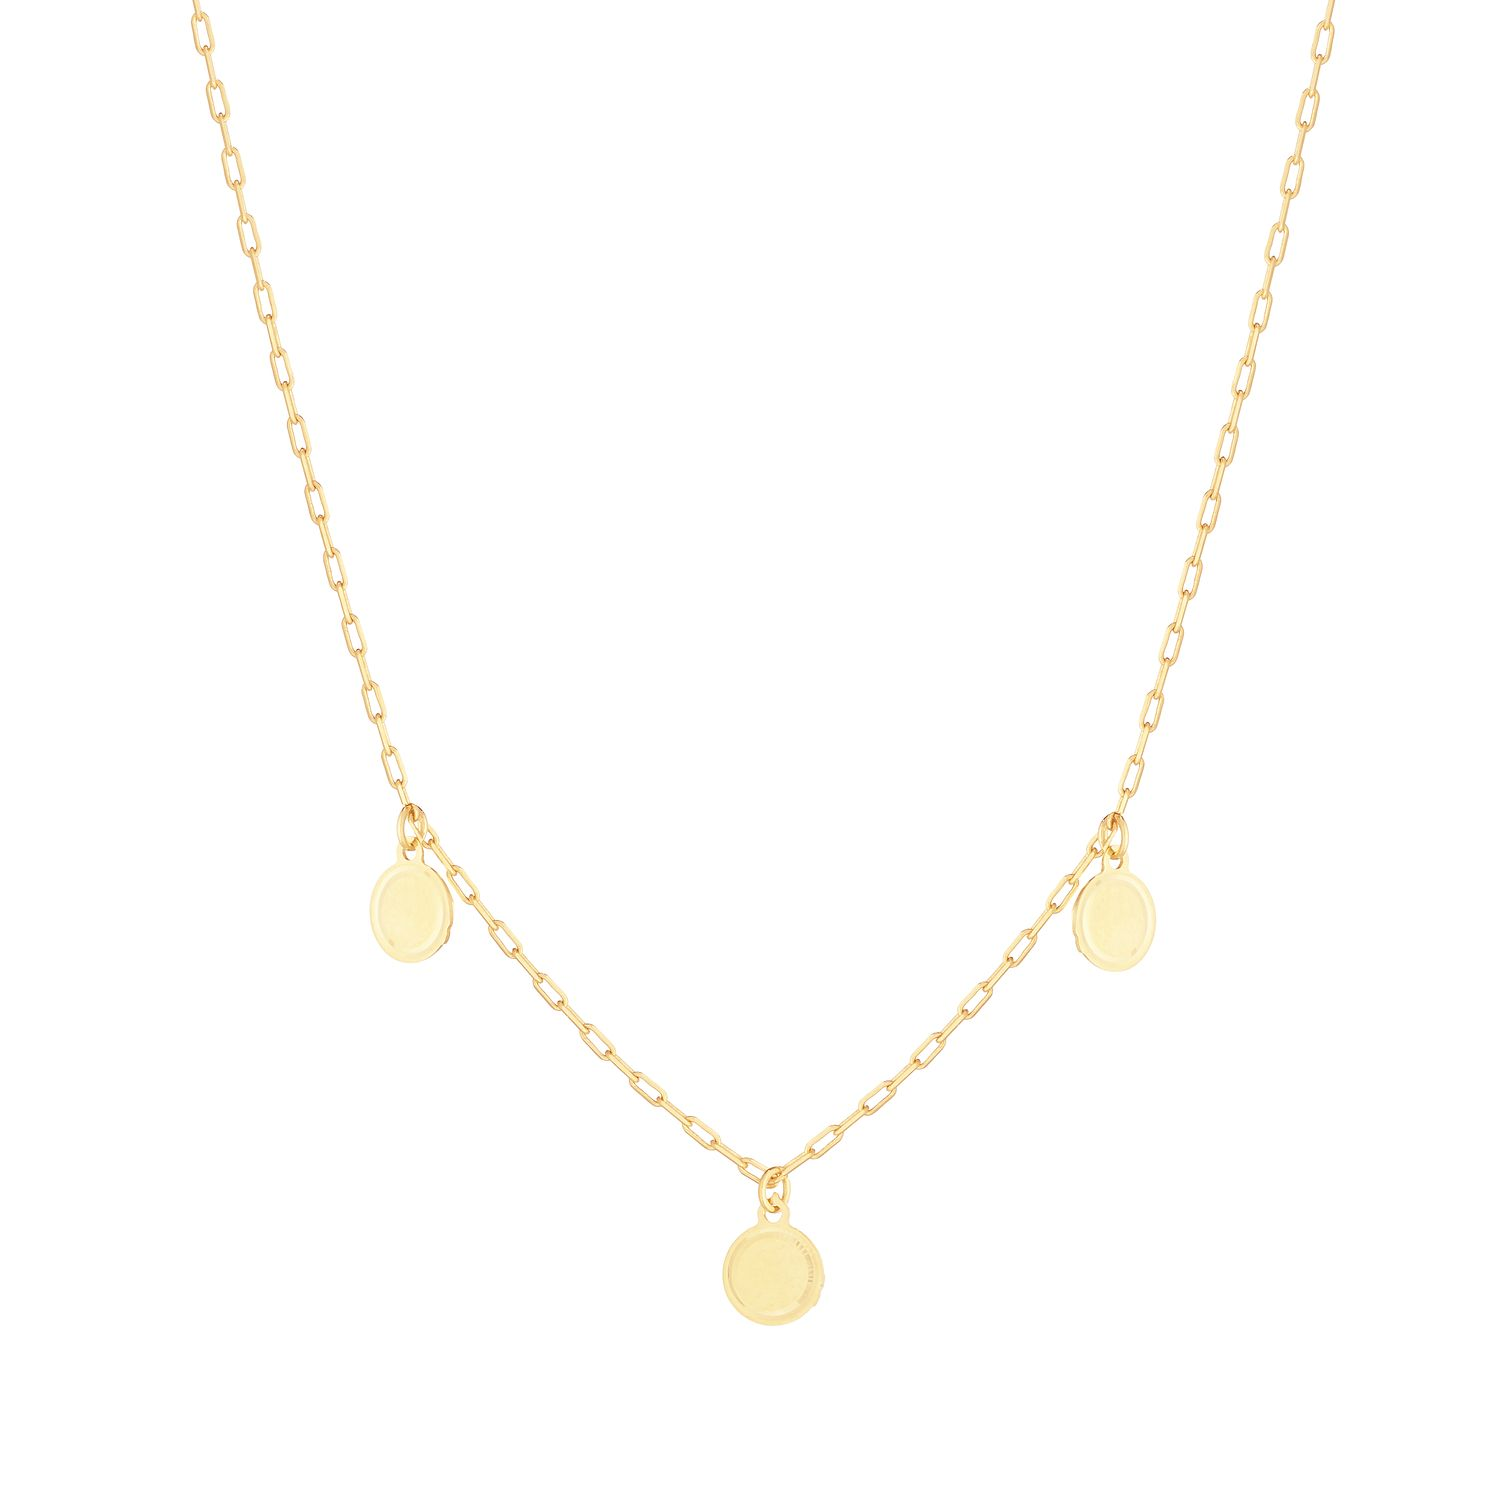 9ct Yellow Gold Disc Drop Necklace - Product number 9738630